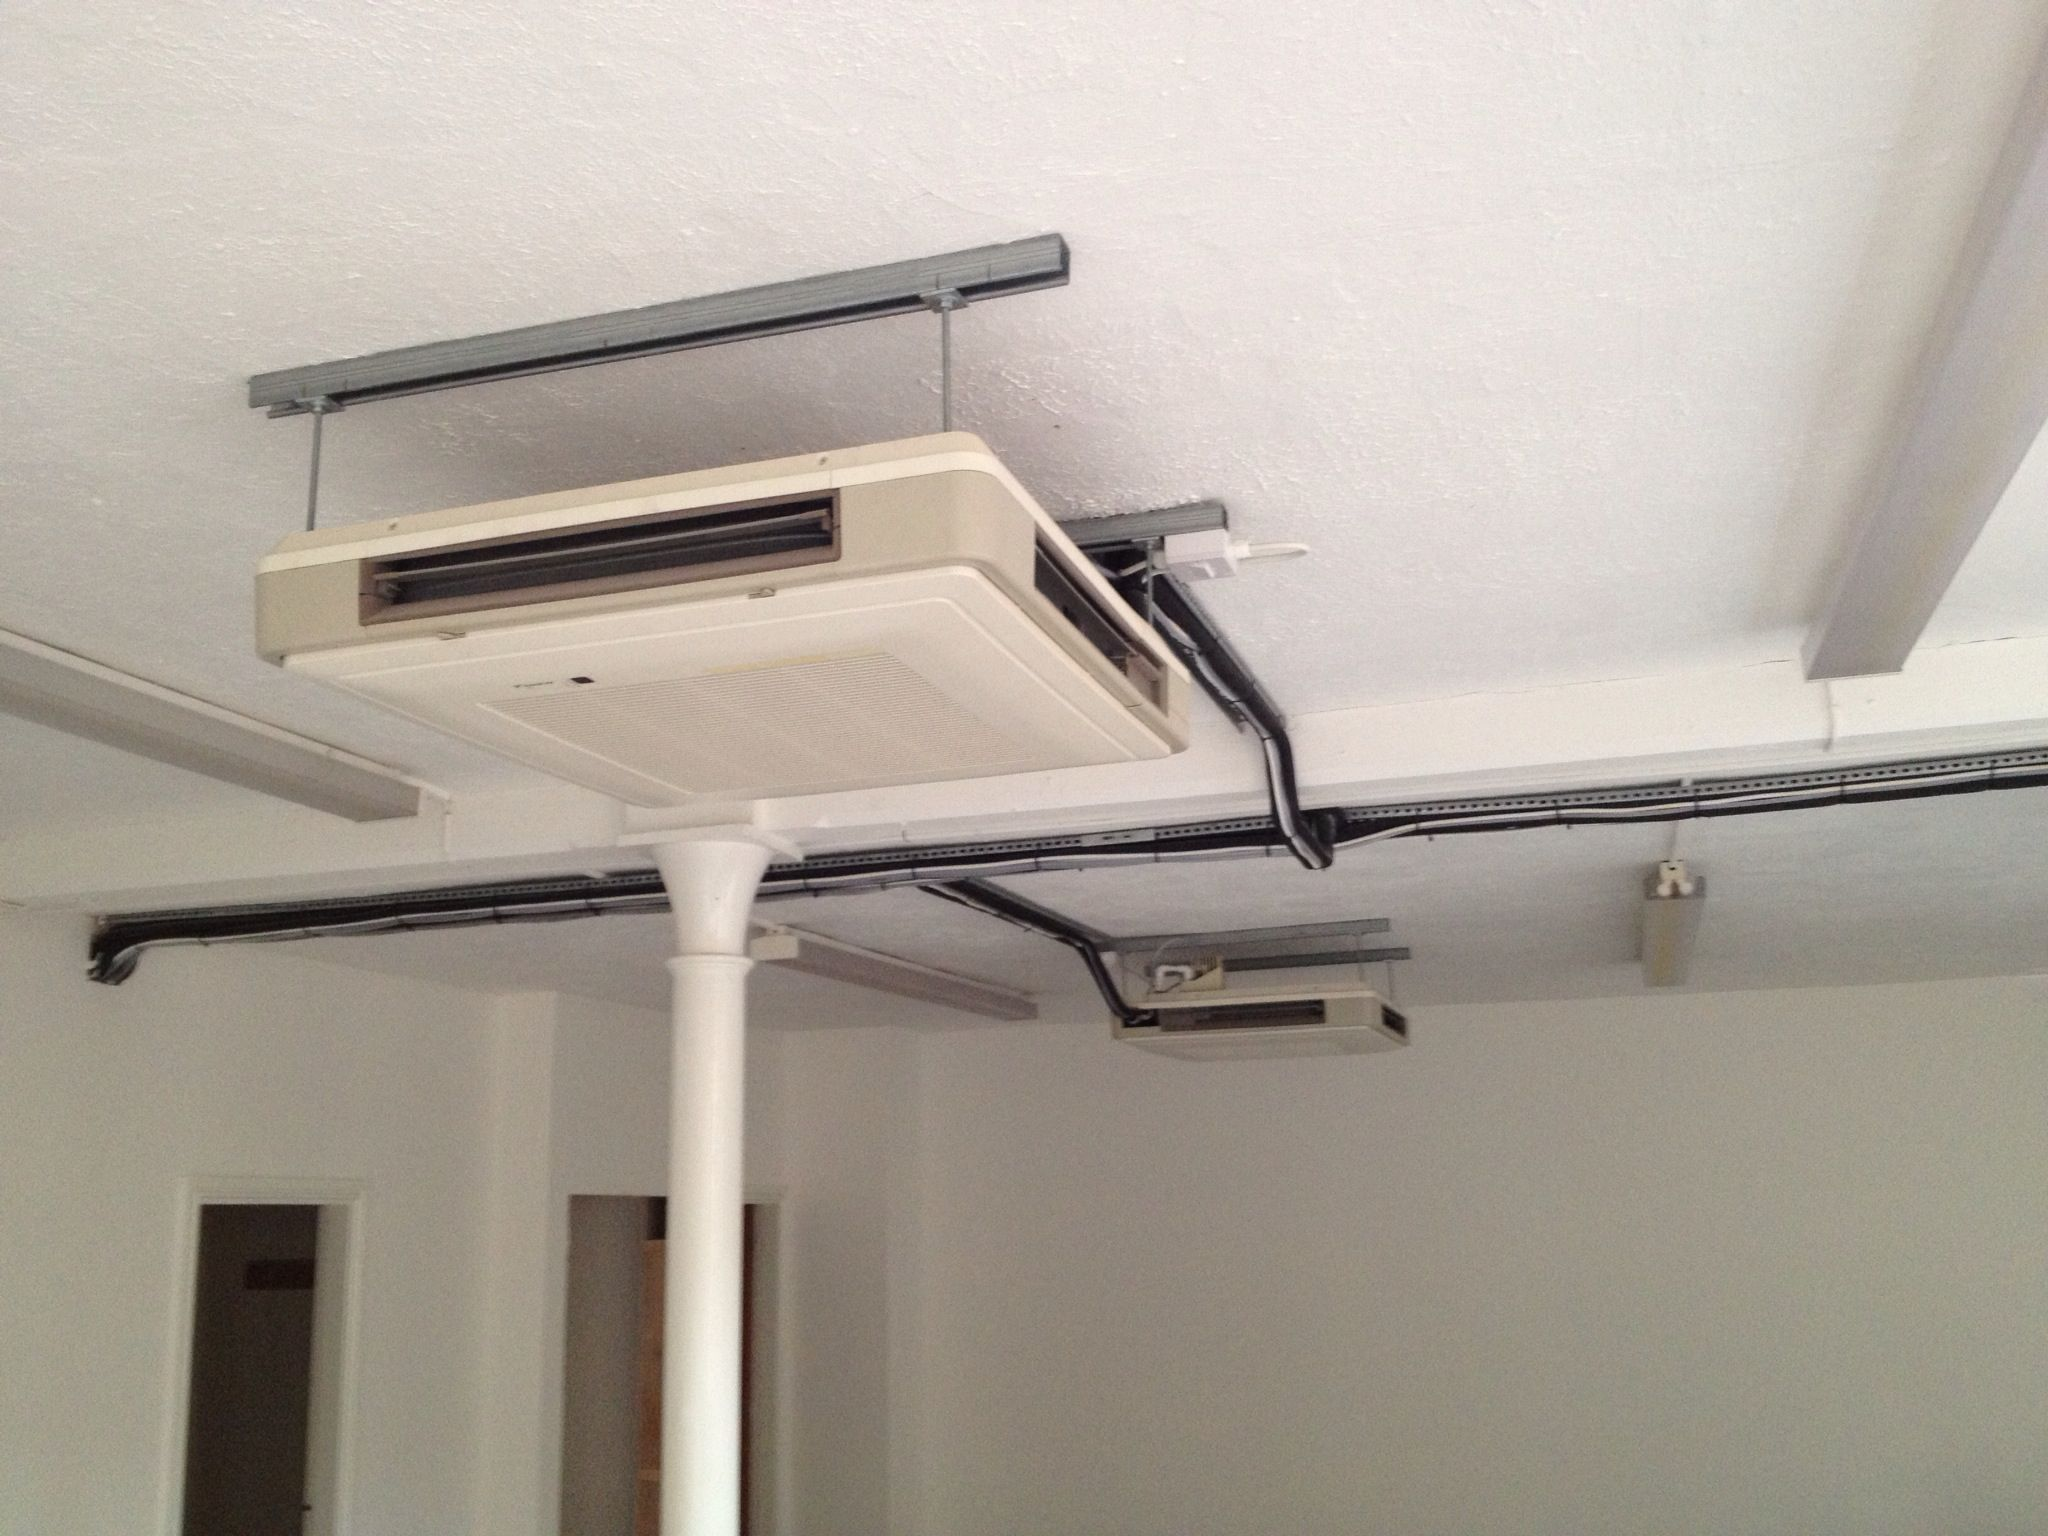 Daikin Under Ceiling Suspended Air Conditioning Installed